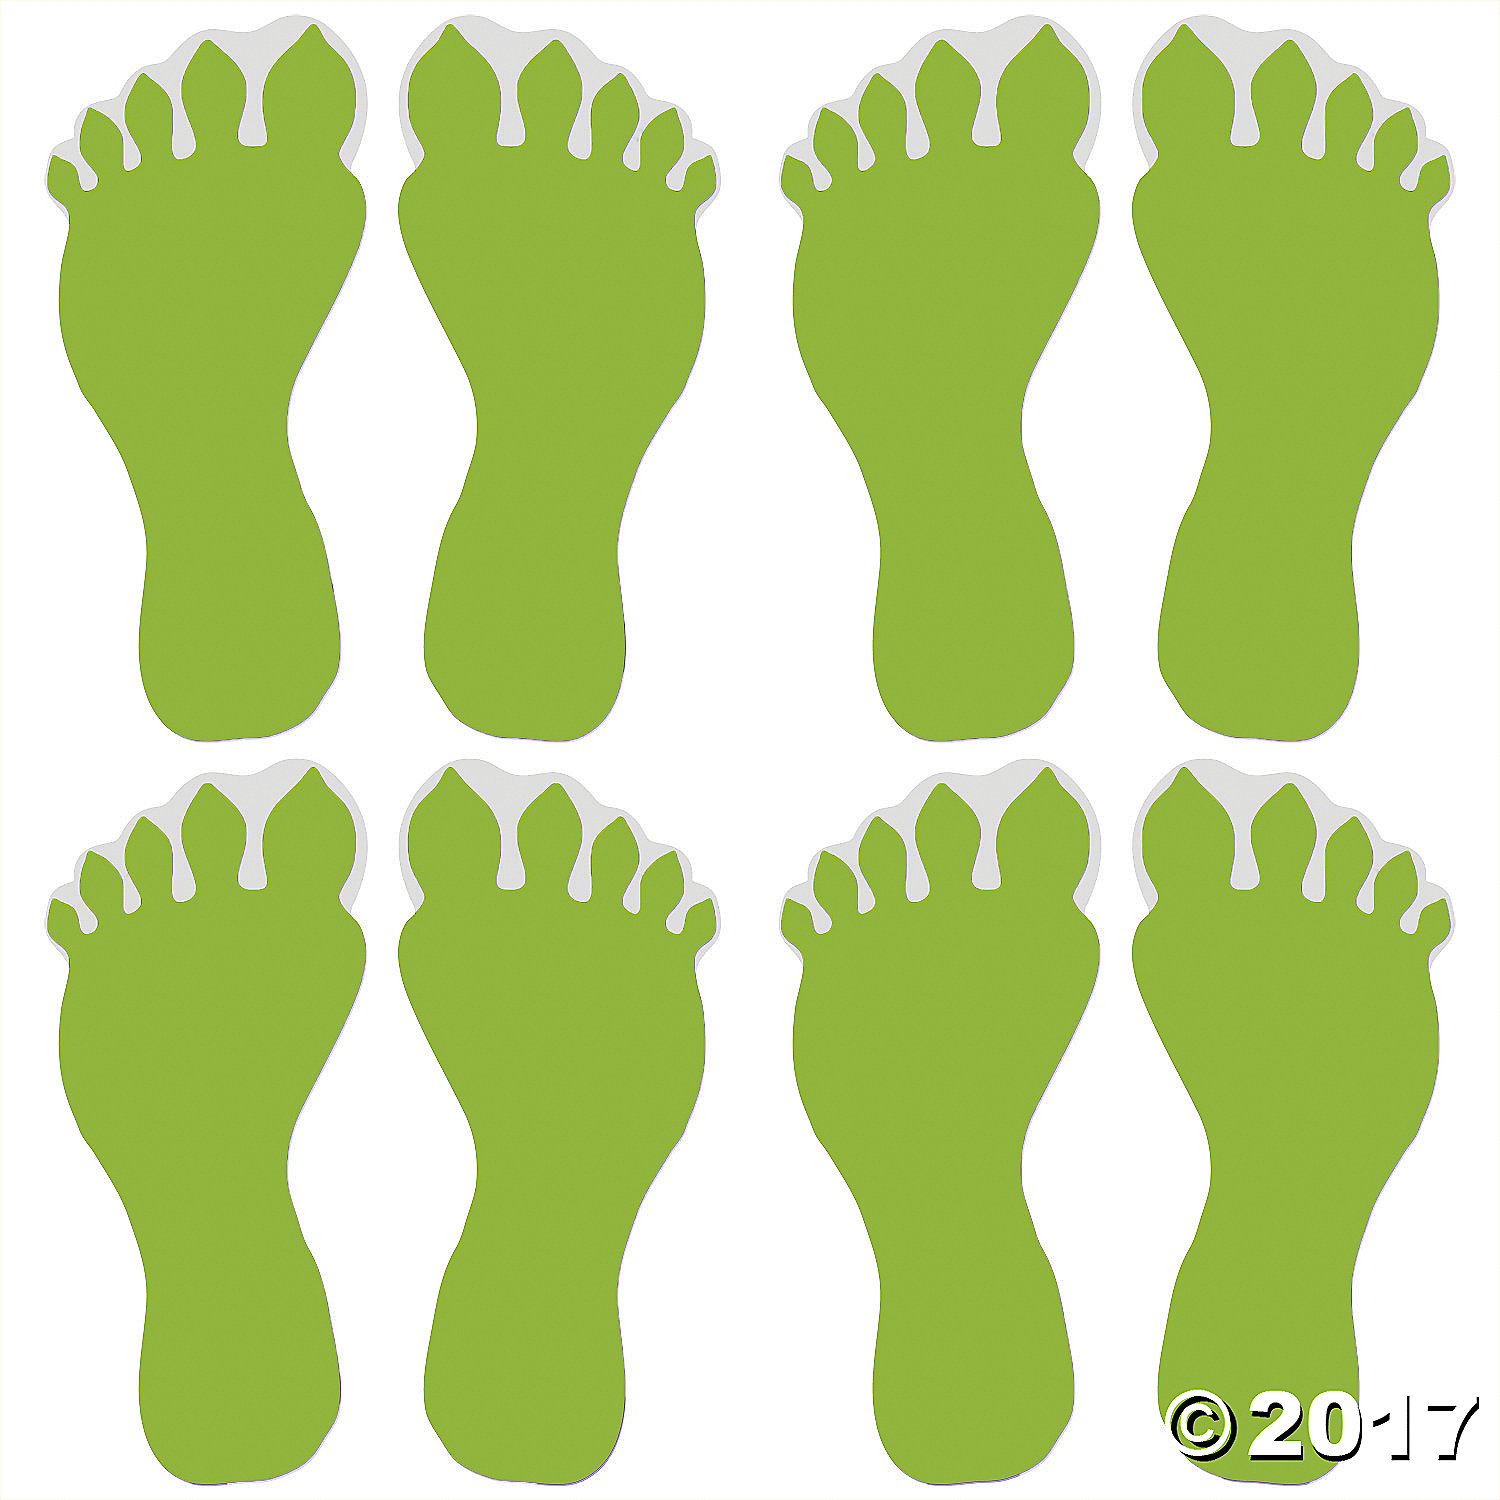 Footprint clipart floor Image Responsive Glow Footprint the